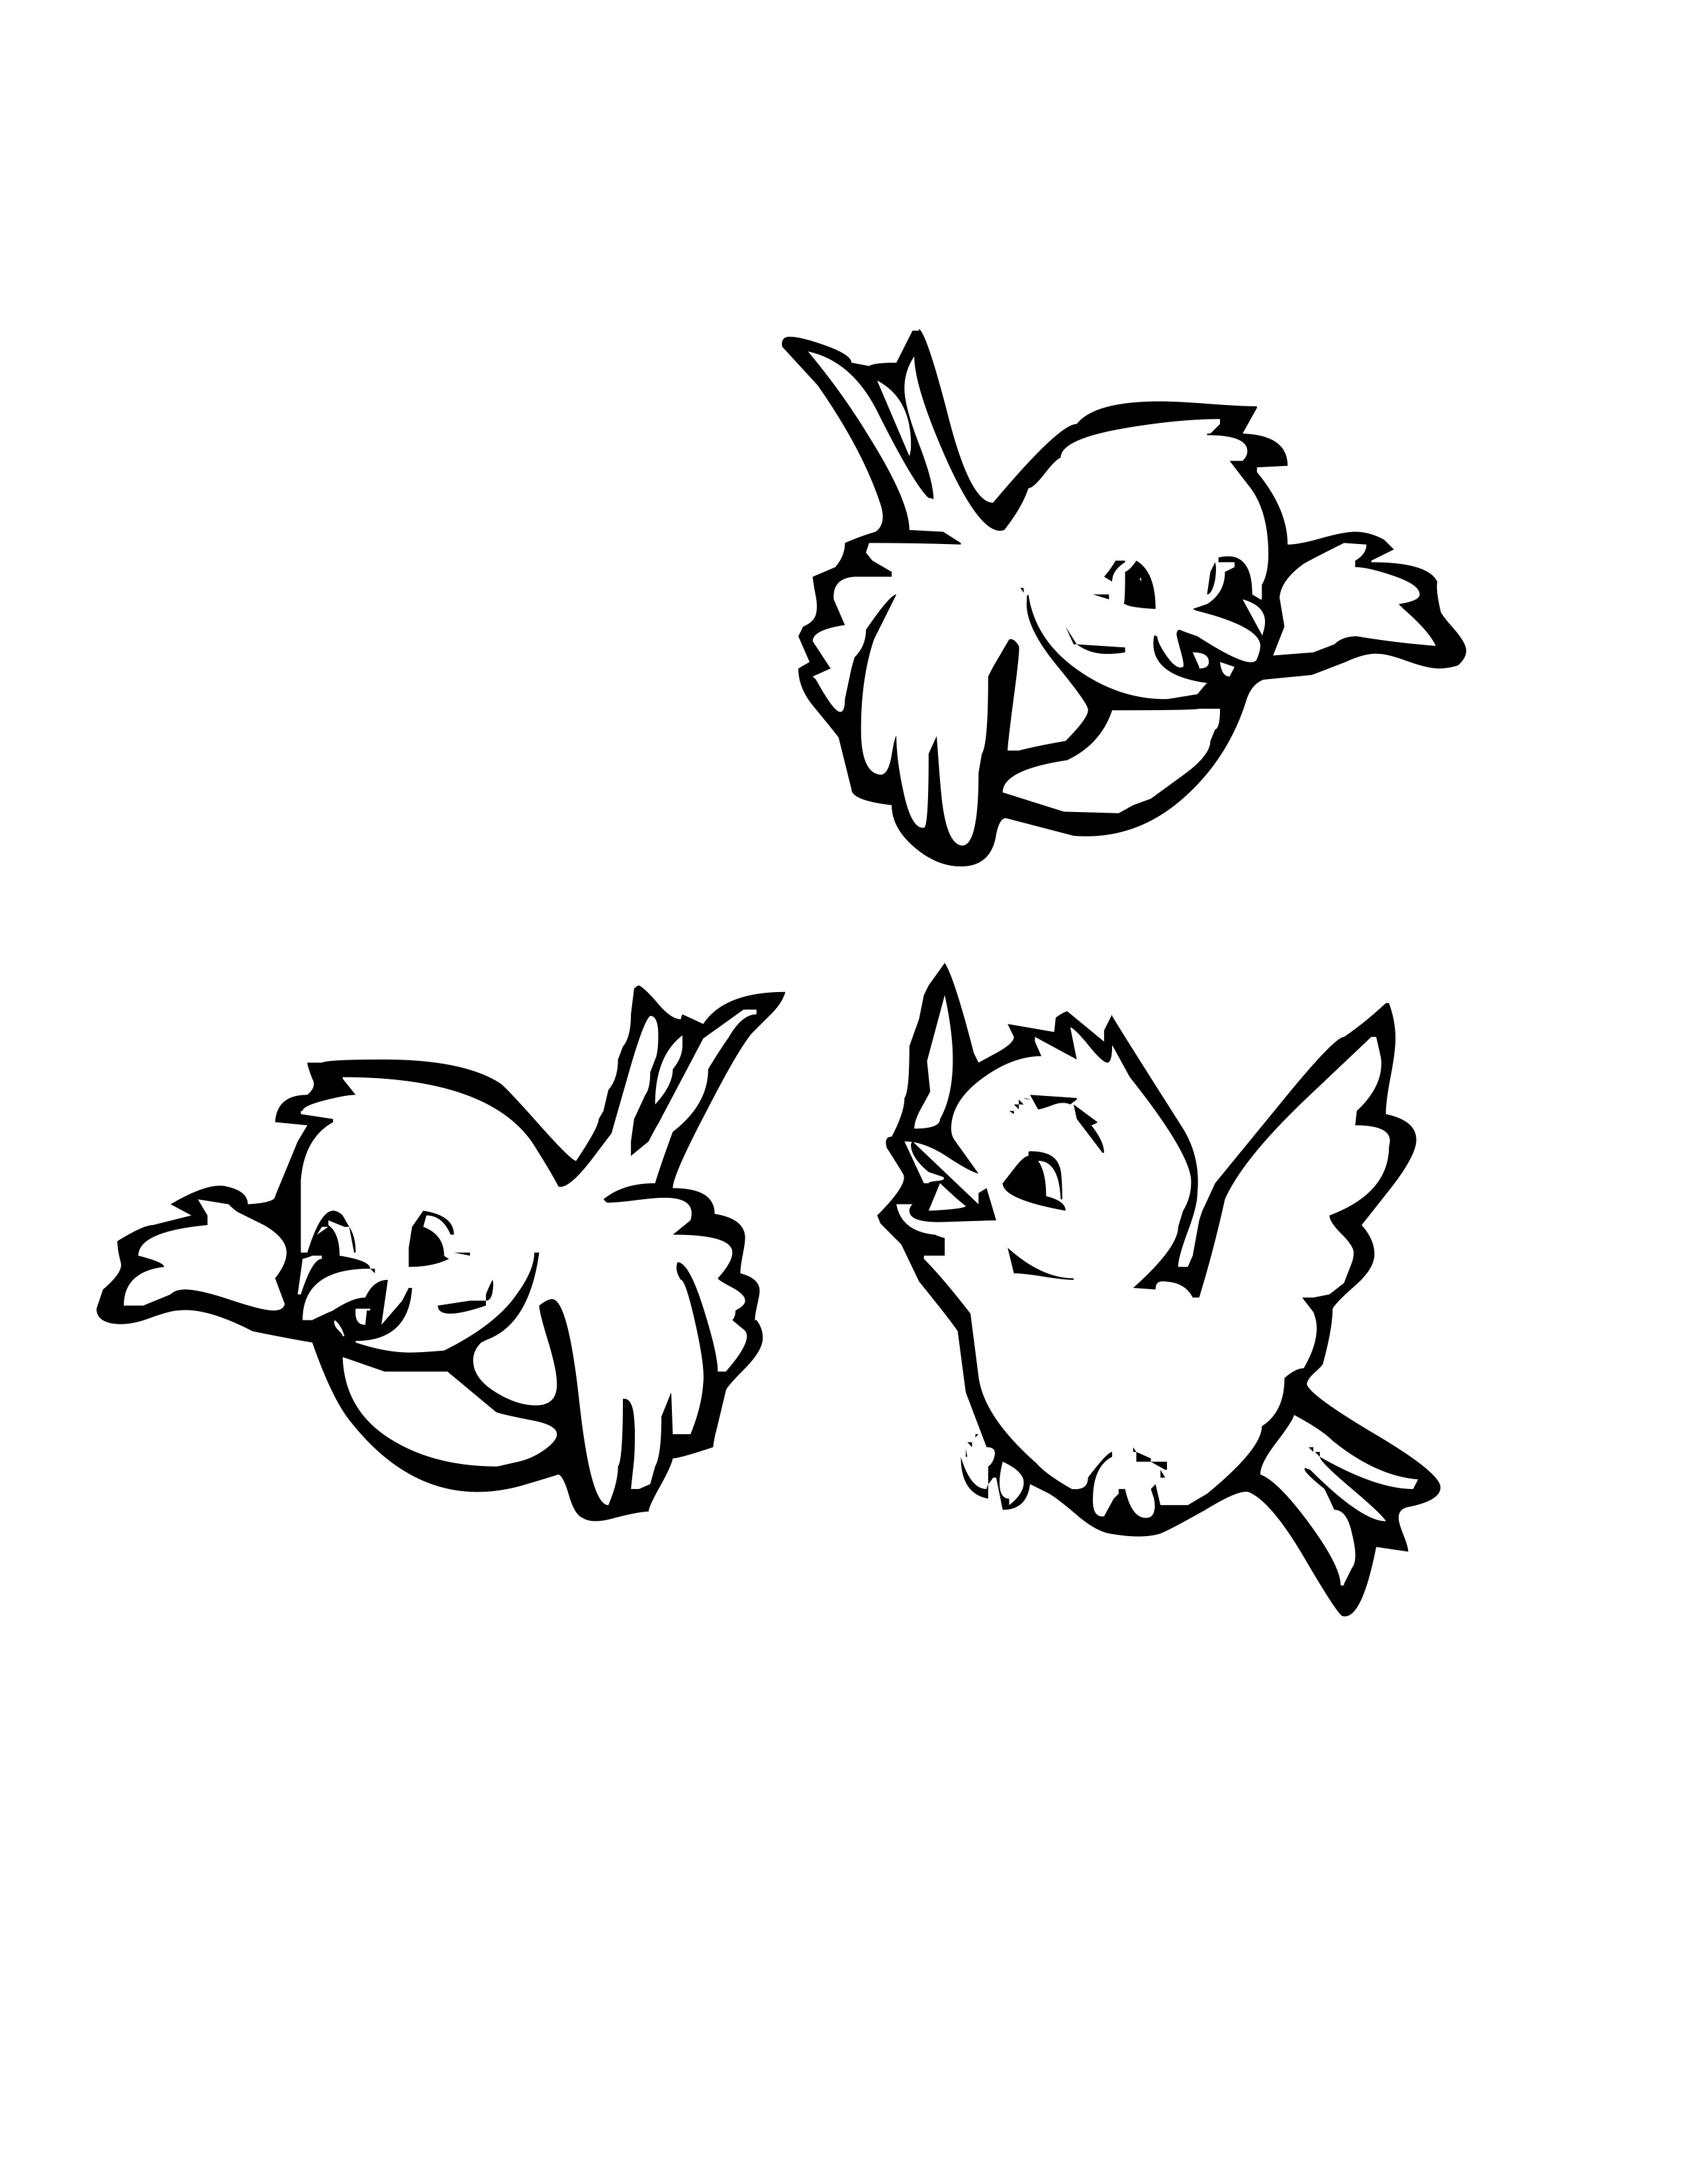 bird colouring pictures bird coloring pages to download and print for free bird colouring pictures